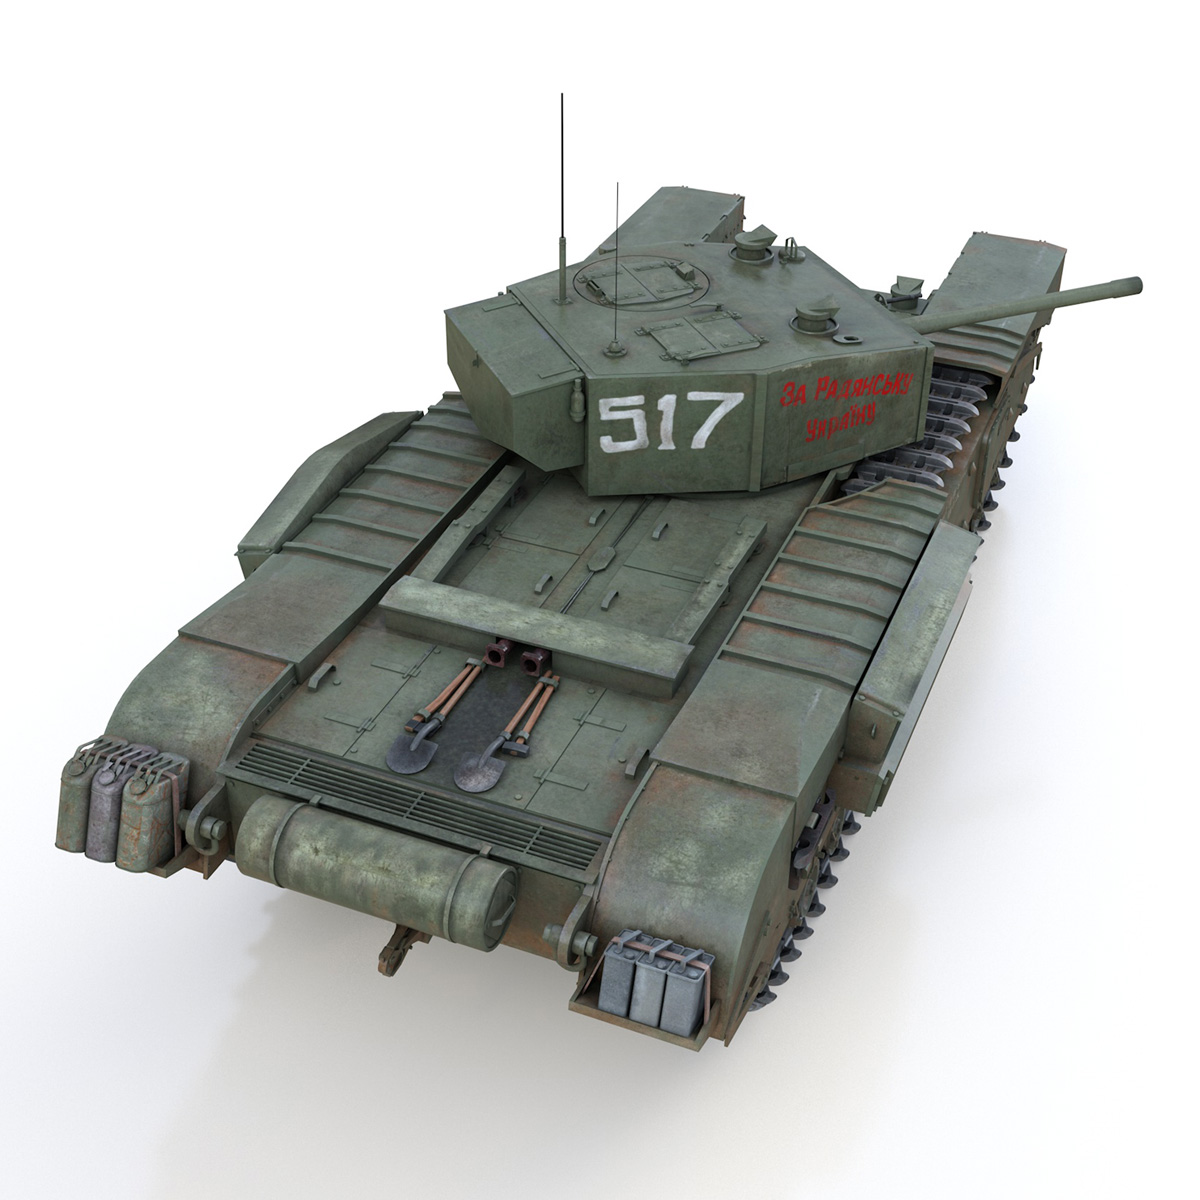 churchill mk iii – 517 – soviet army 3d model 3ds fbx c4d lwo obj 272978